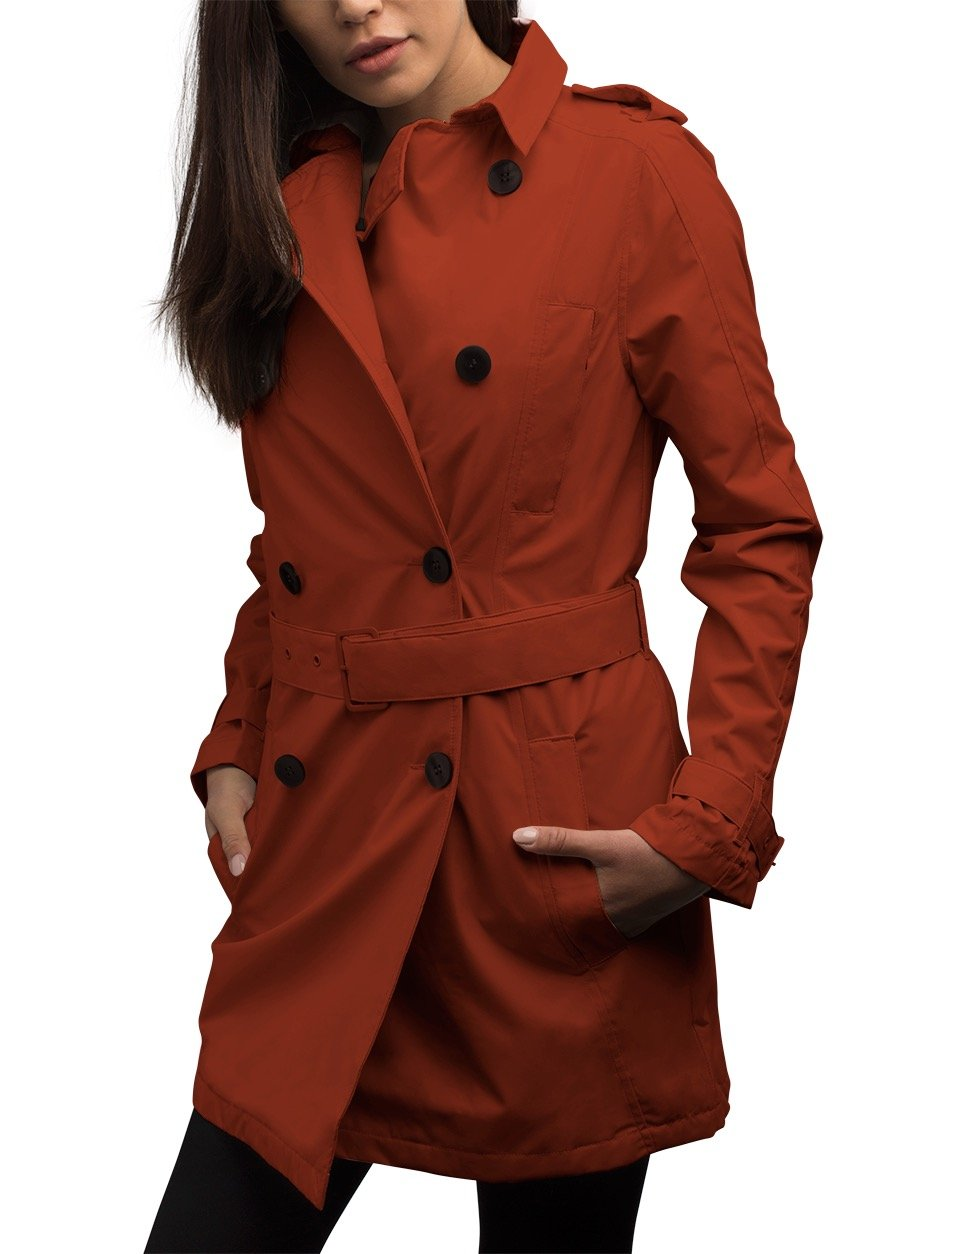 SCOTTeVEST Women's Trench Coat - 18 Pockets - Travel Clothing PRK L